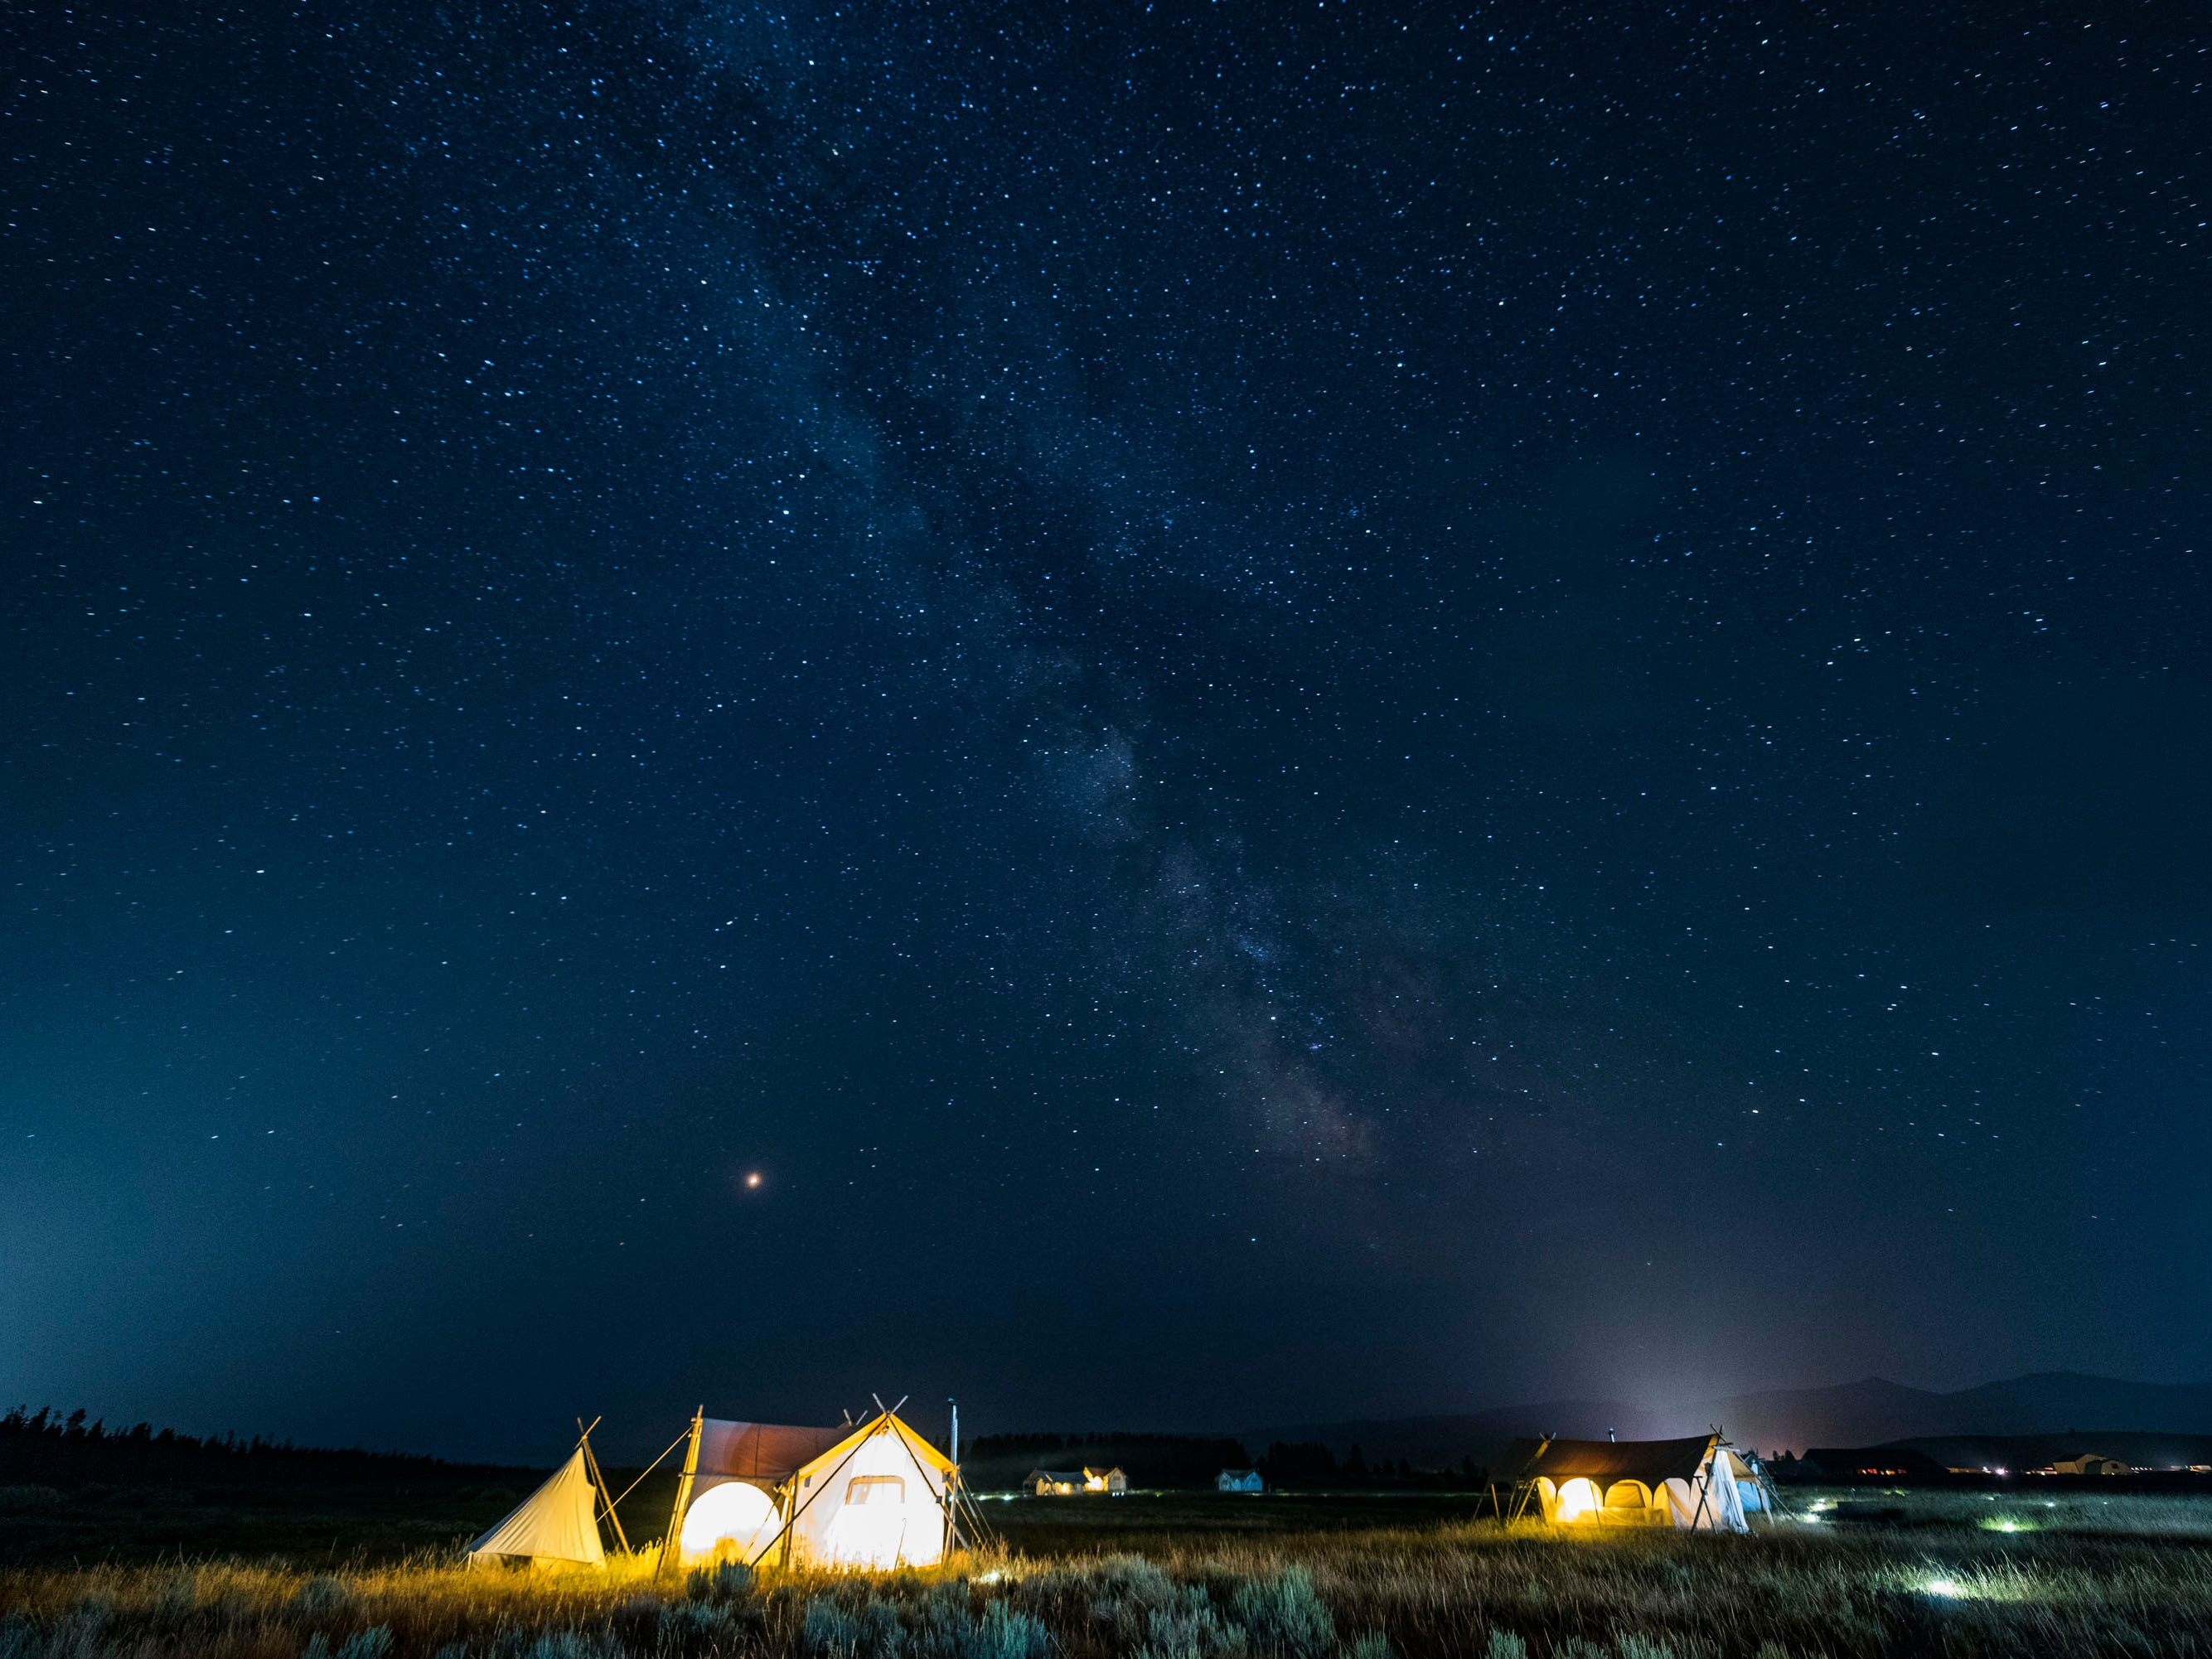 Sleeping under a starlit sky at Yellowstone Under Canvas.